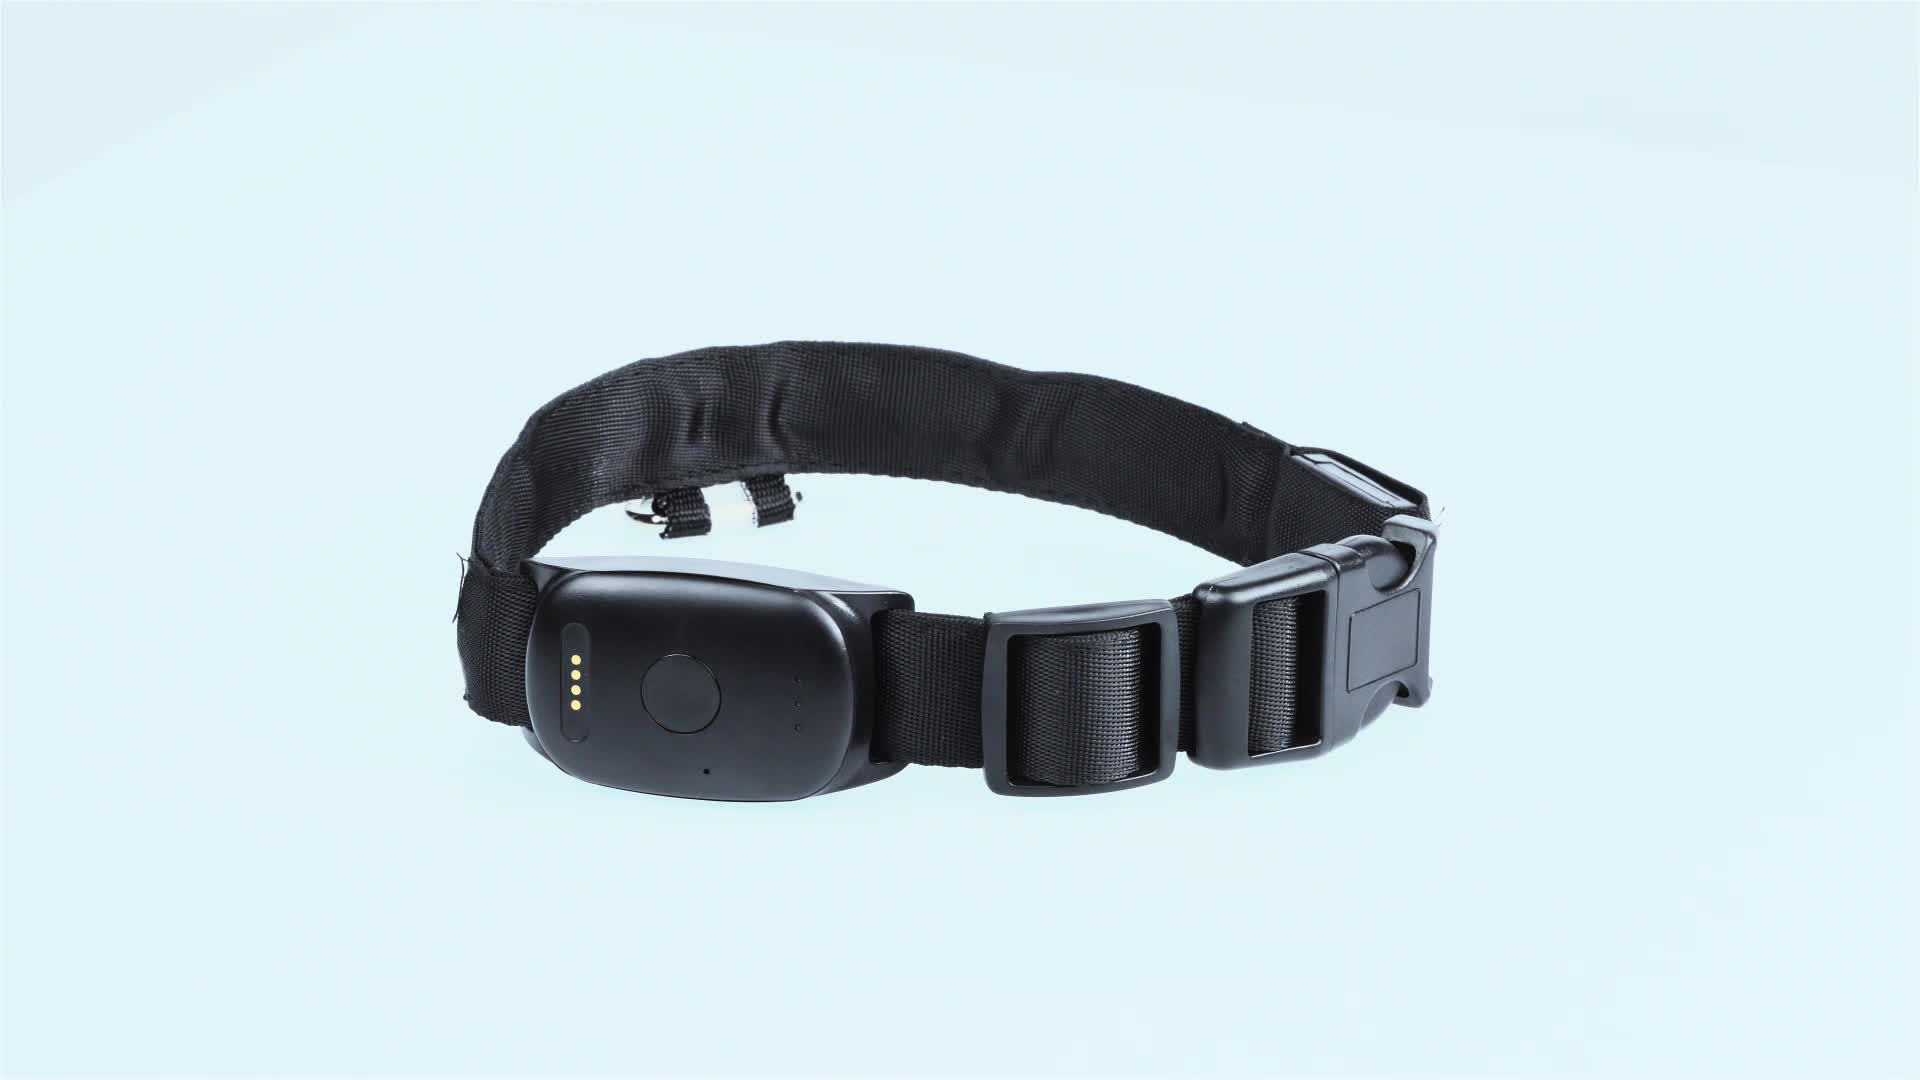 Smart Gadget For Pet Location Tracker, Real Time Activity Tracker GPS For Dogs and Cats